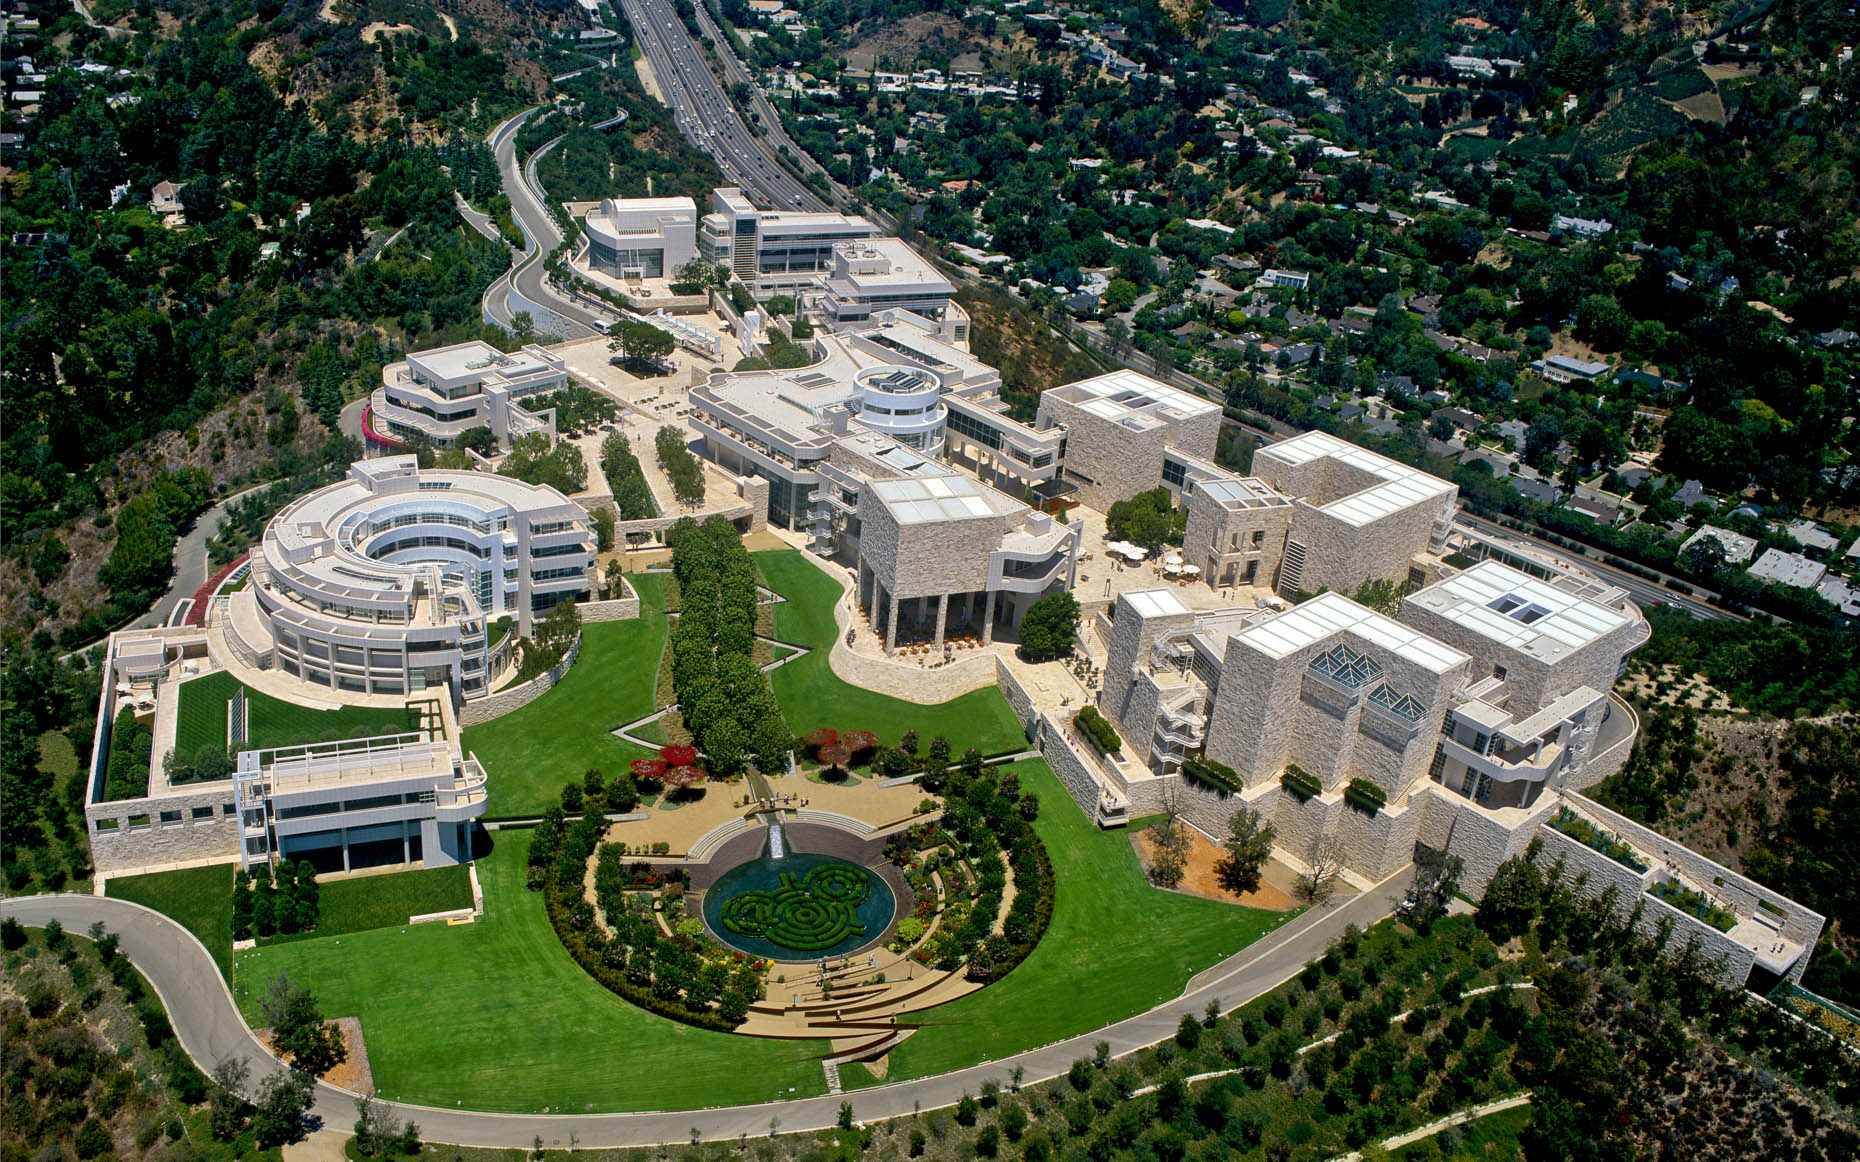 J. Paul Getty Museum Los Angeles CA - Aerial photogroahy by Stefen Turner